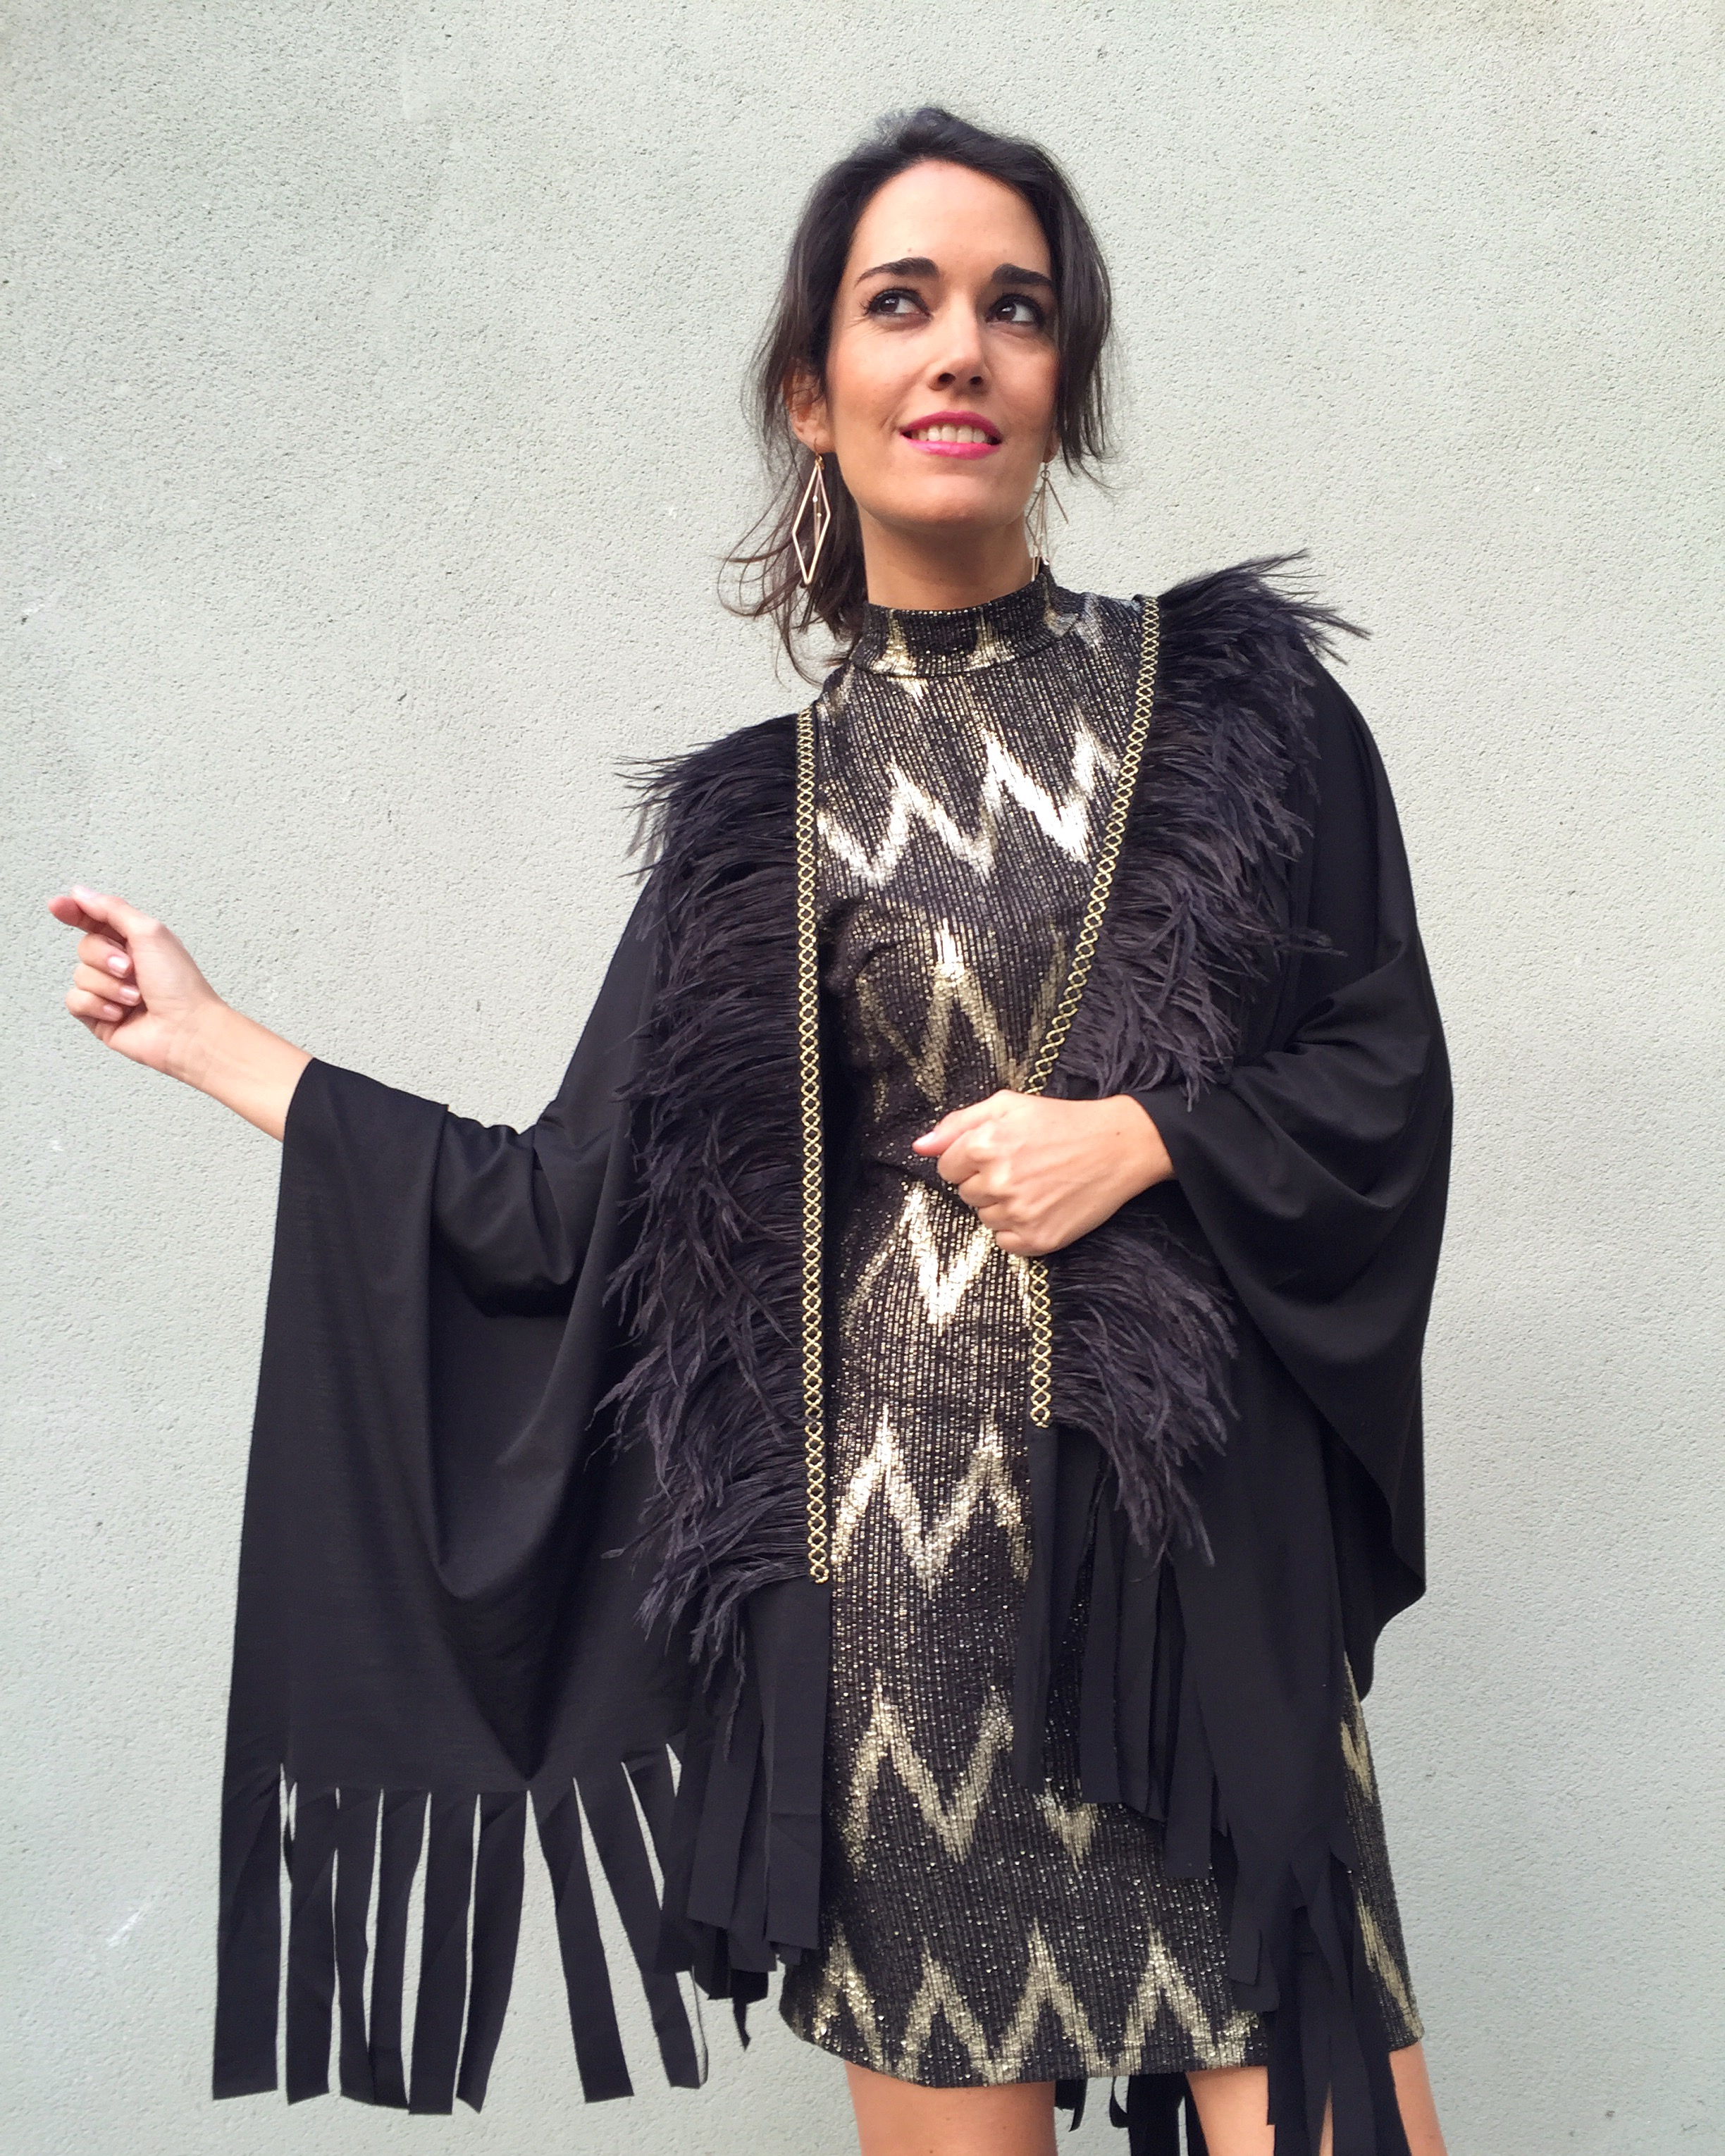 Poncho Dress Evitaloquepuedas